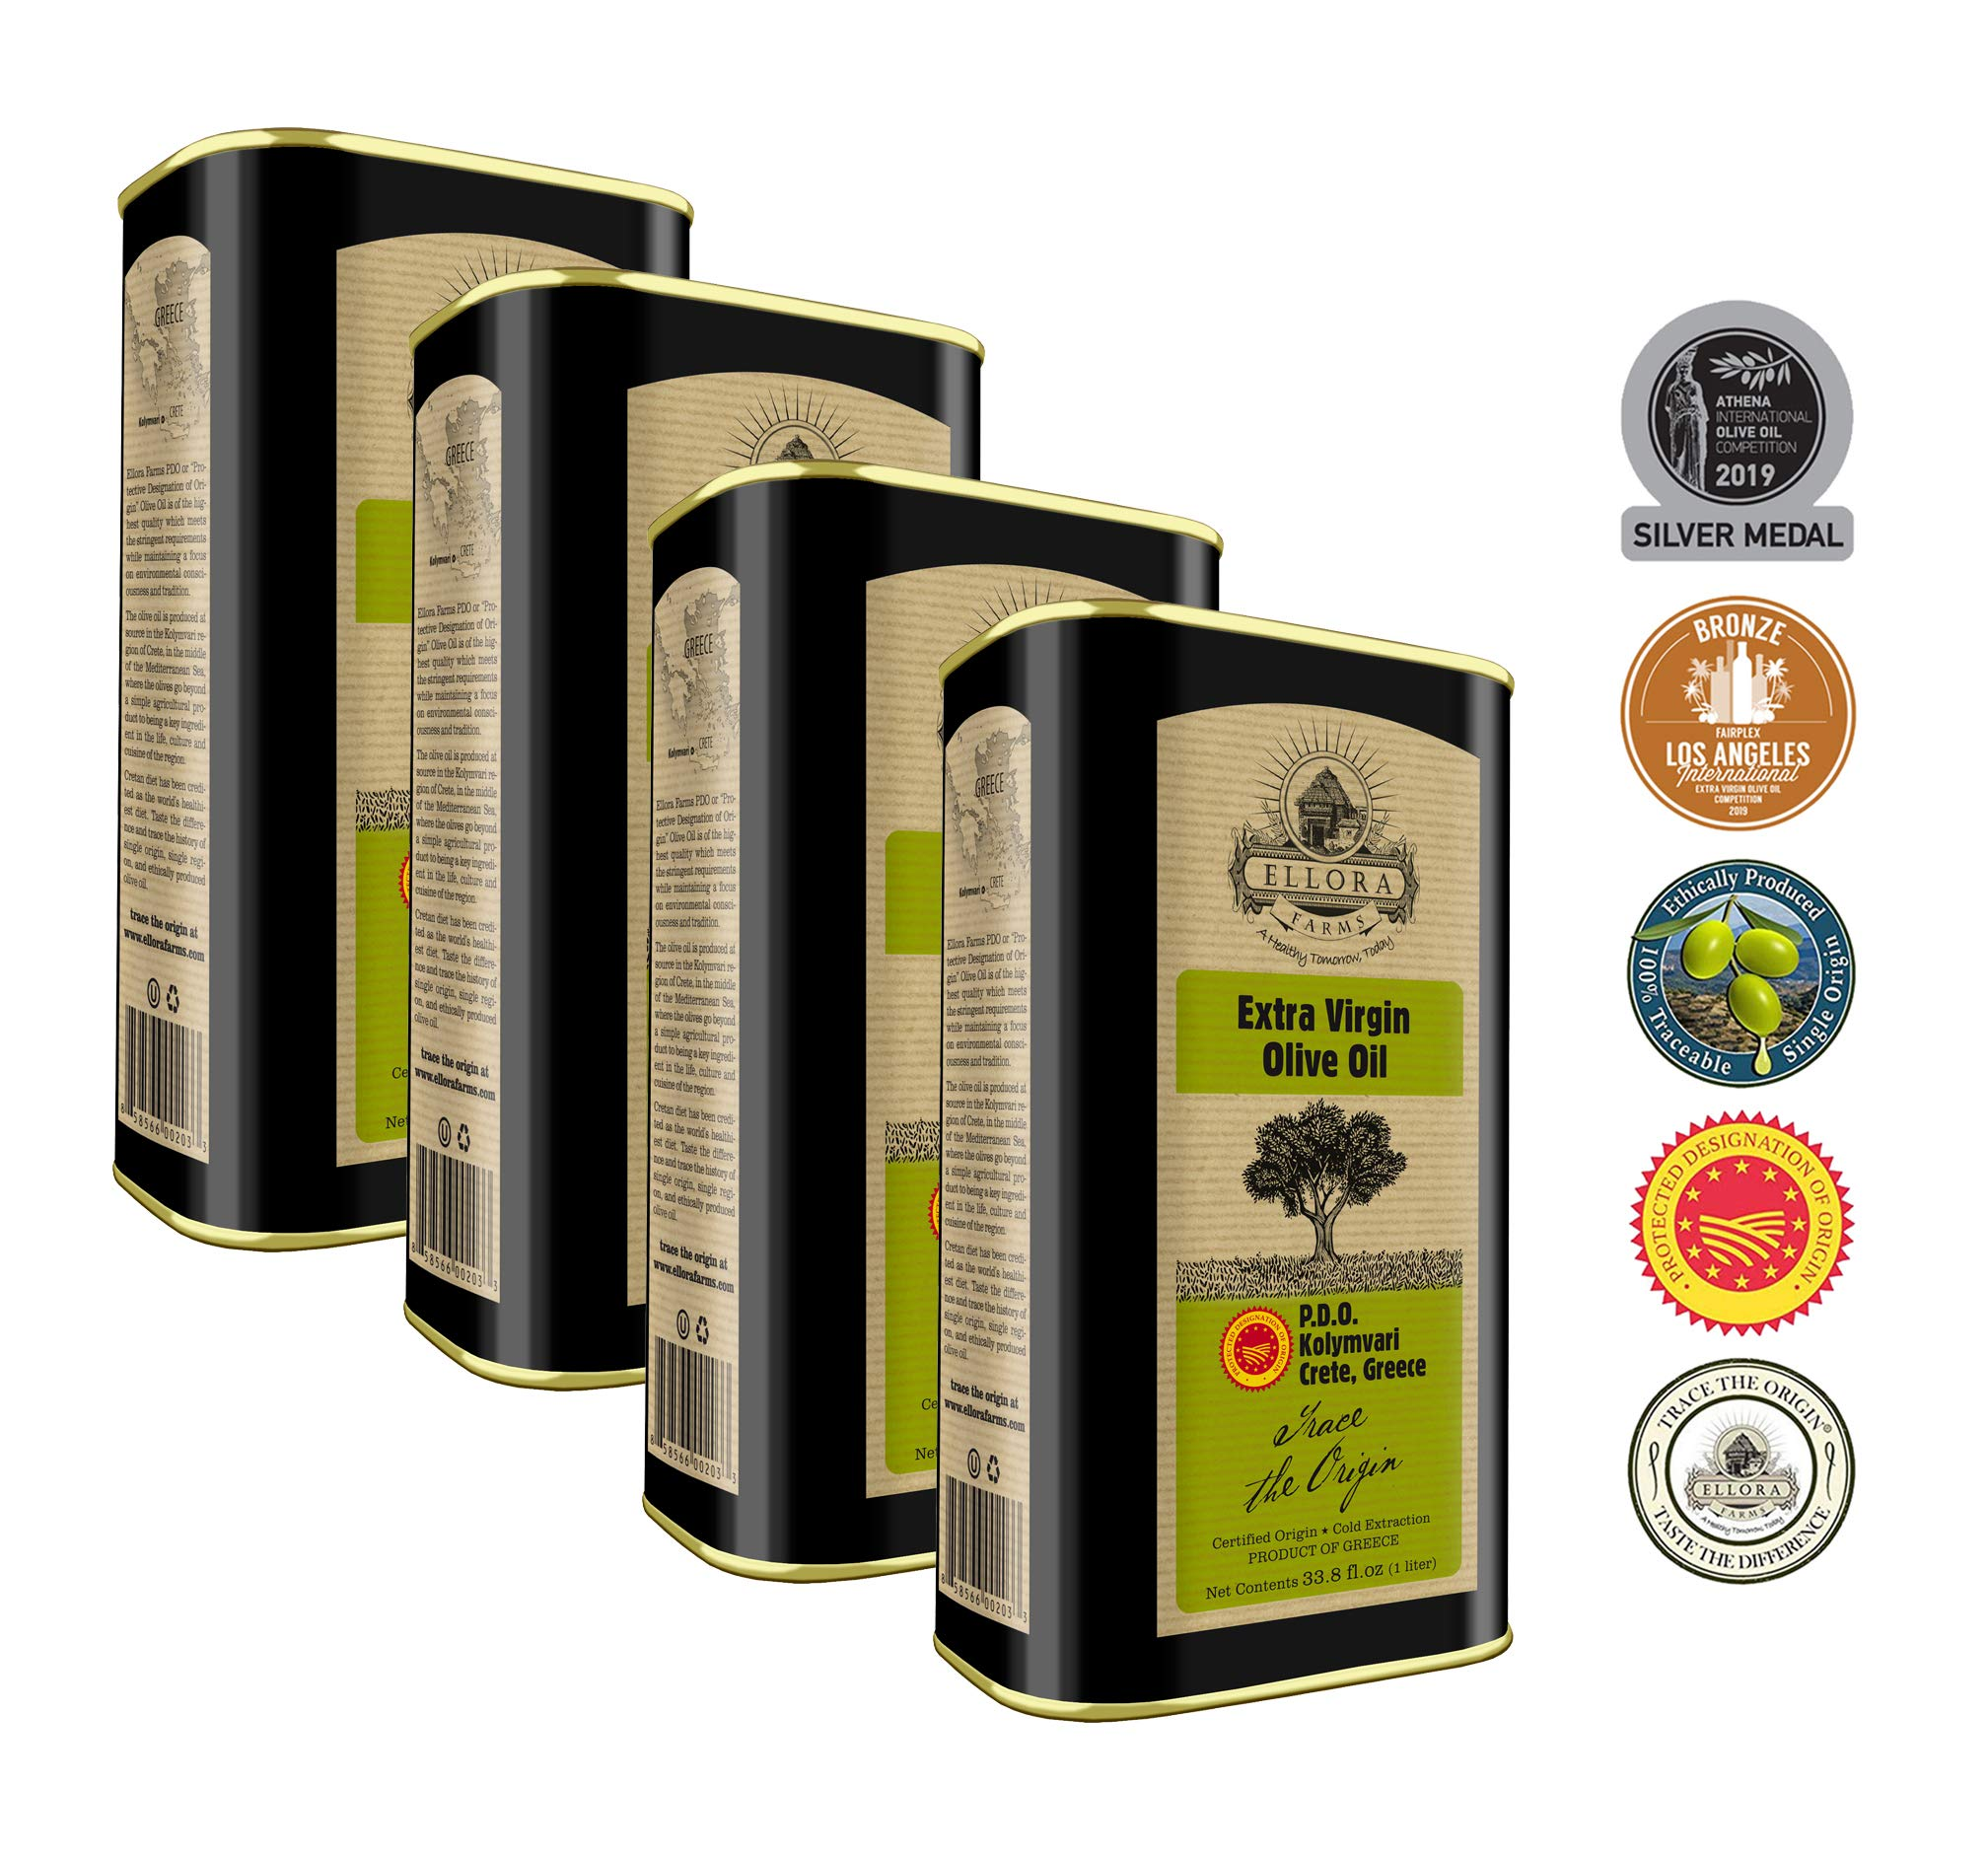 Ellora Farms | Certified PDO Extra Virgin Olive Oil | First Cold Press | Traceable Olive Oil | Born in Ancient Greece | Rich in Antioxidants | 1Ltr. X 4 Tins, total 135.2 FL oz. | Pack of 4 by Ellora Farms